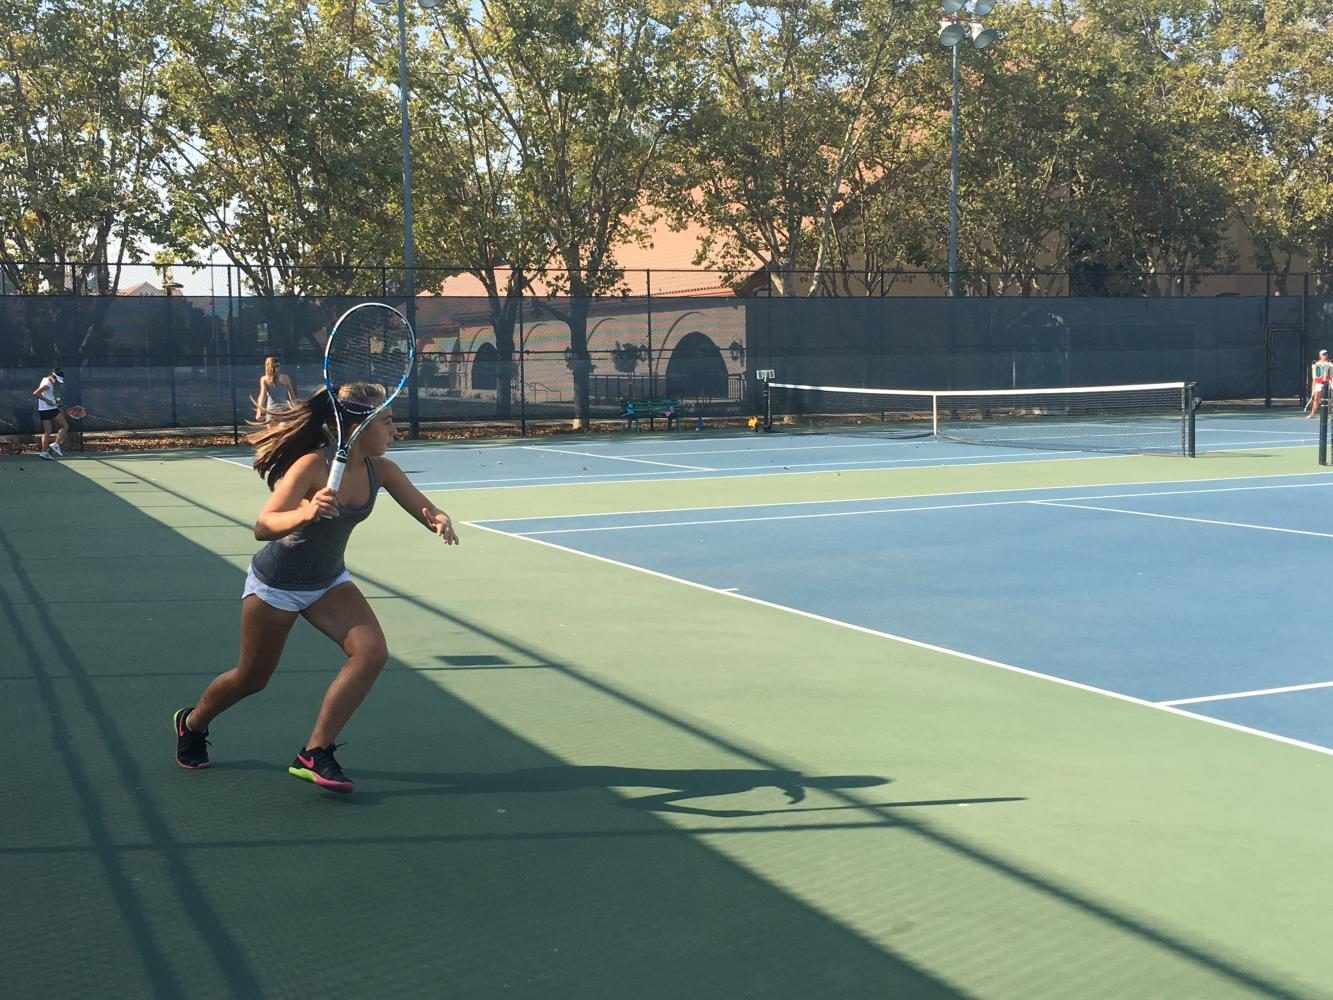 Lady Vikes lost  to the Titans with close score of 4-3